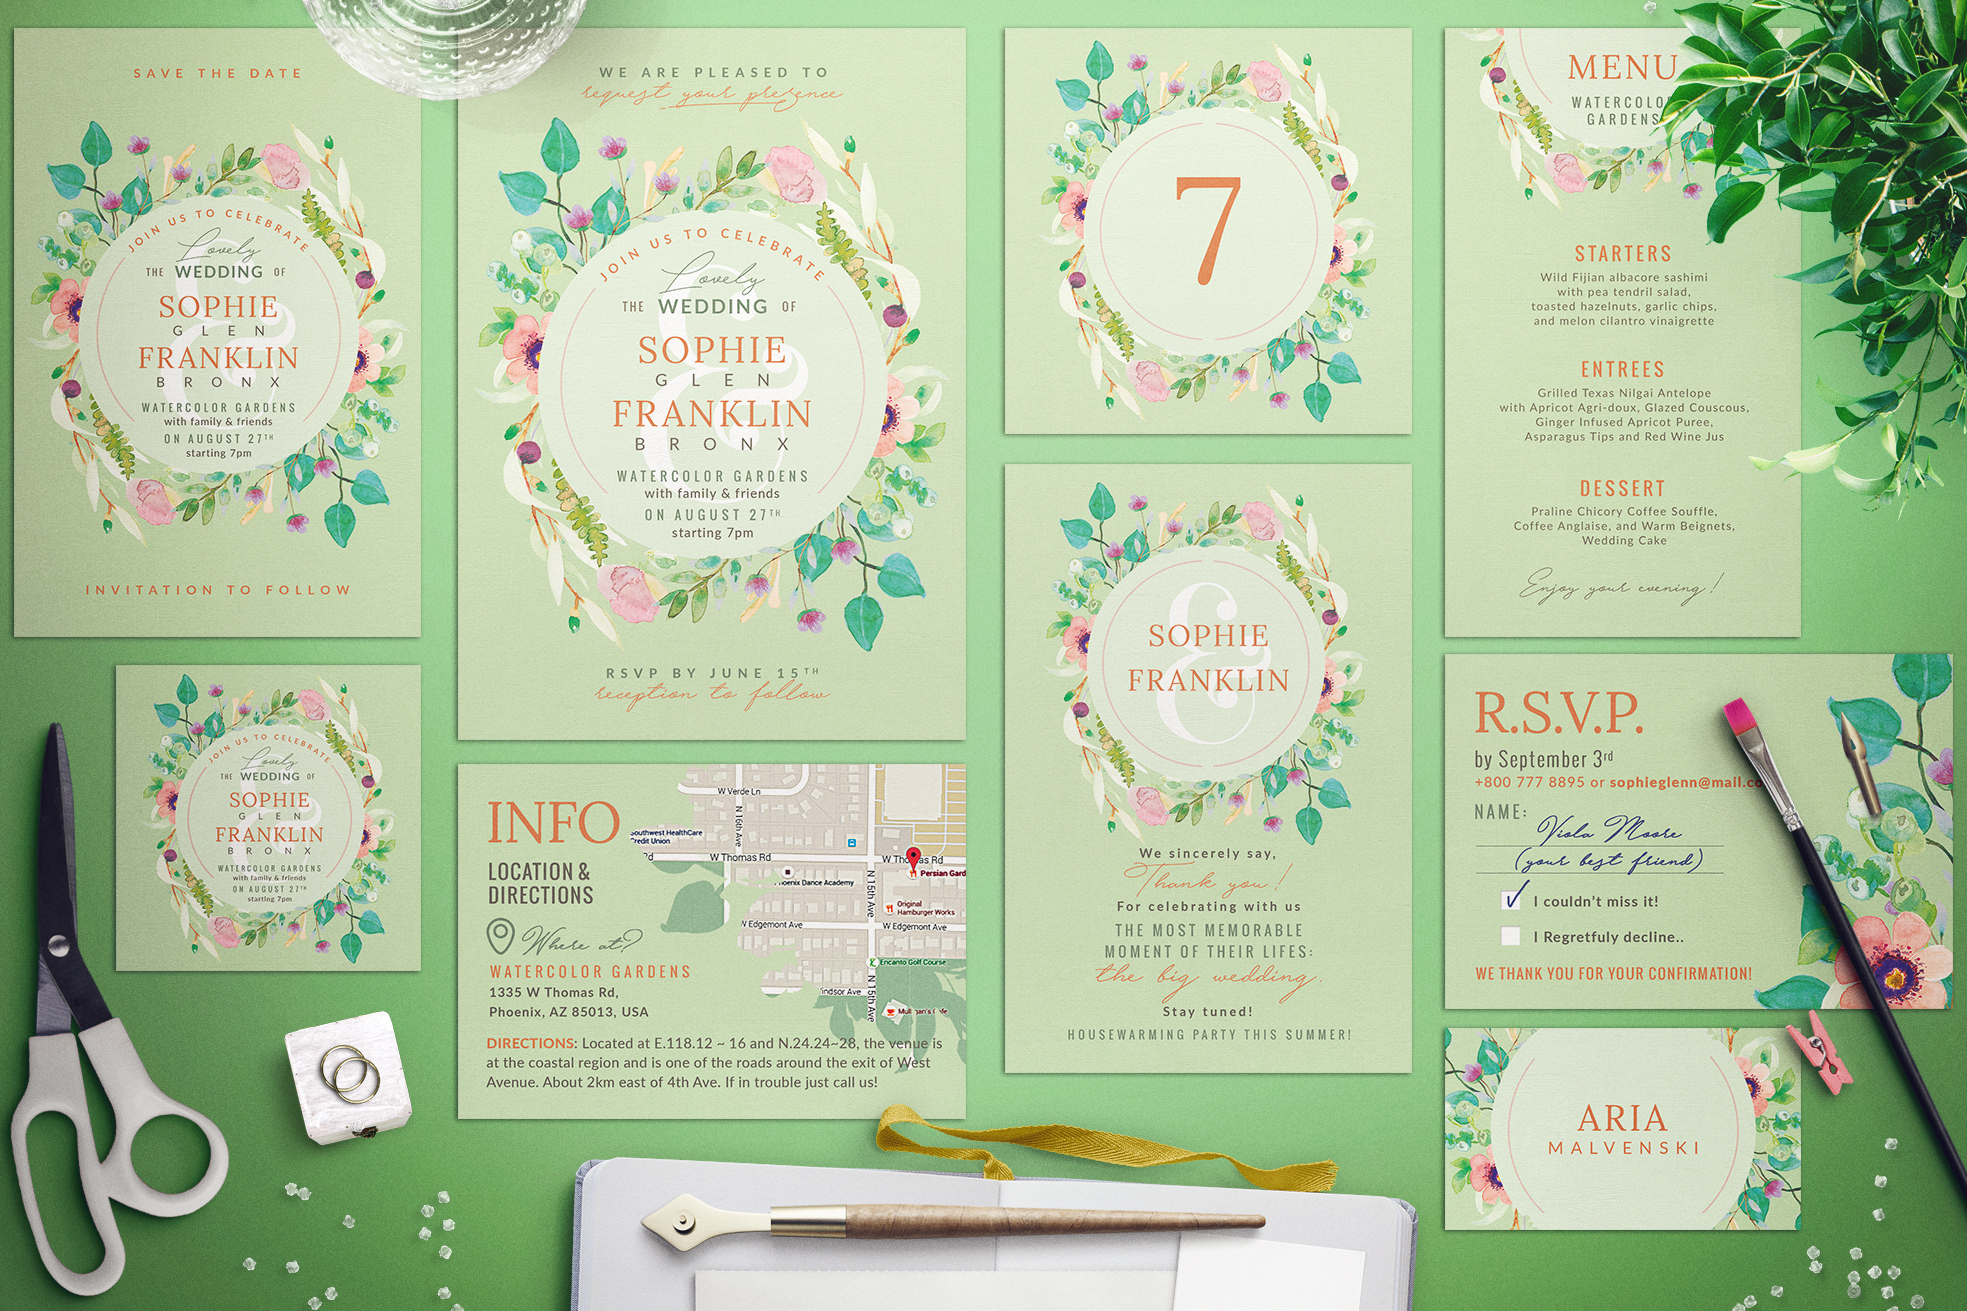 Wedding Suite XI Lovely Greenery III Graphic Print Templates By lavie1blonde - Image 2